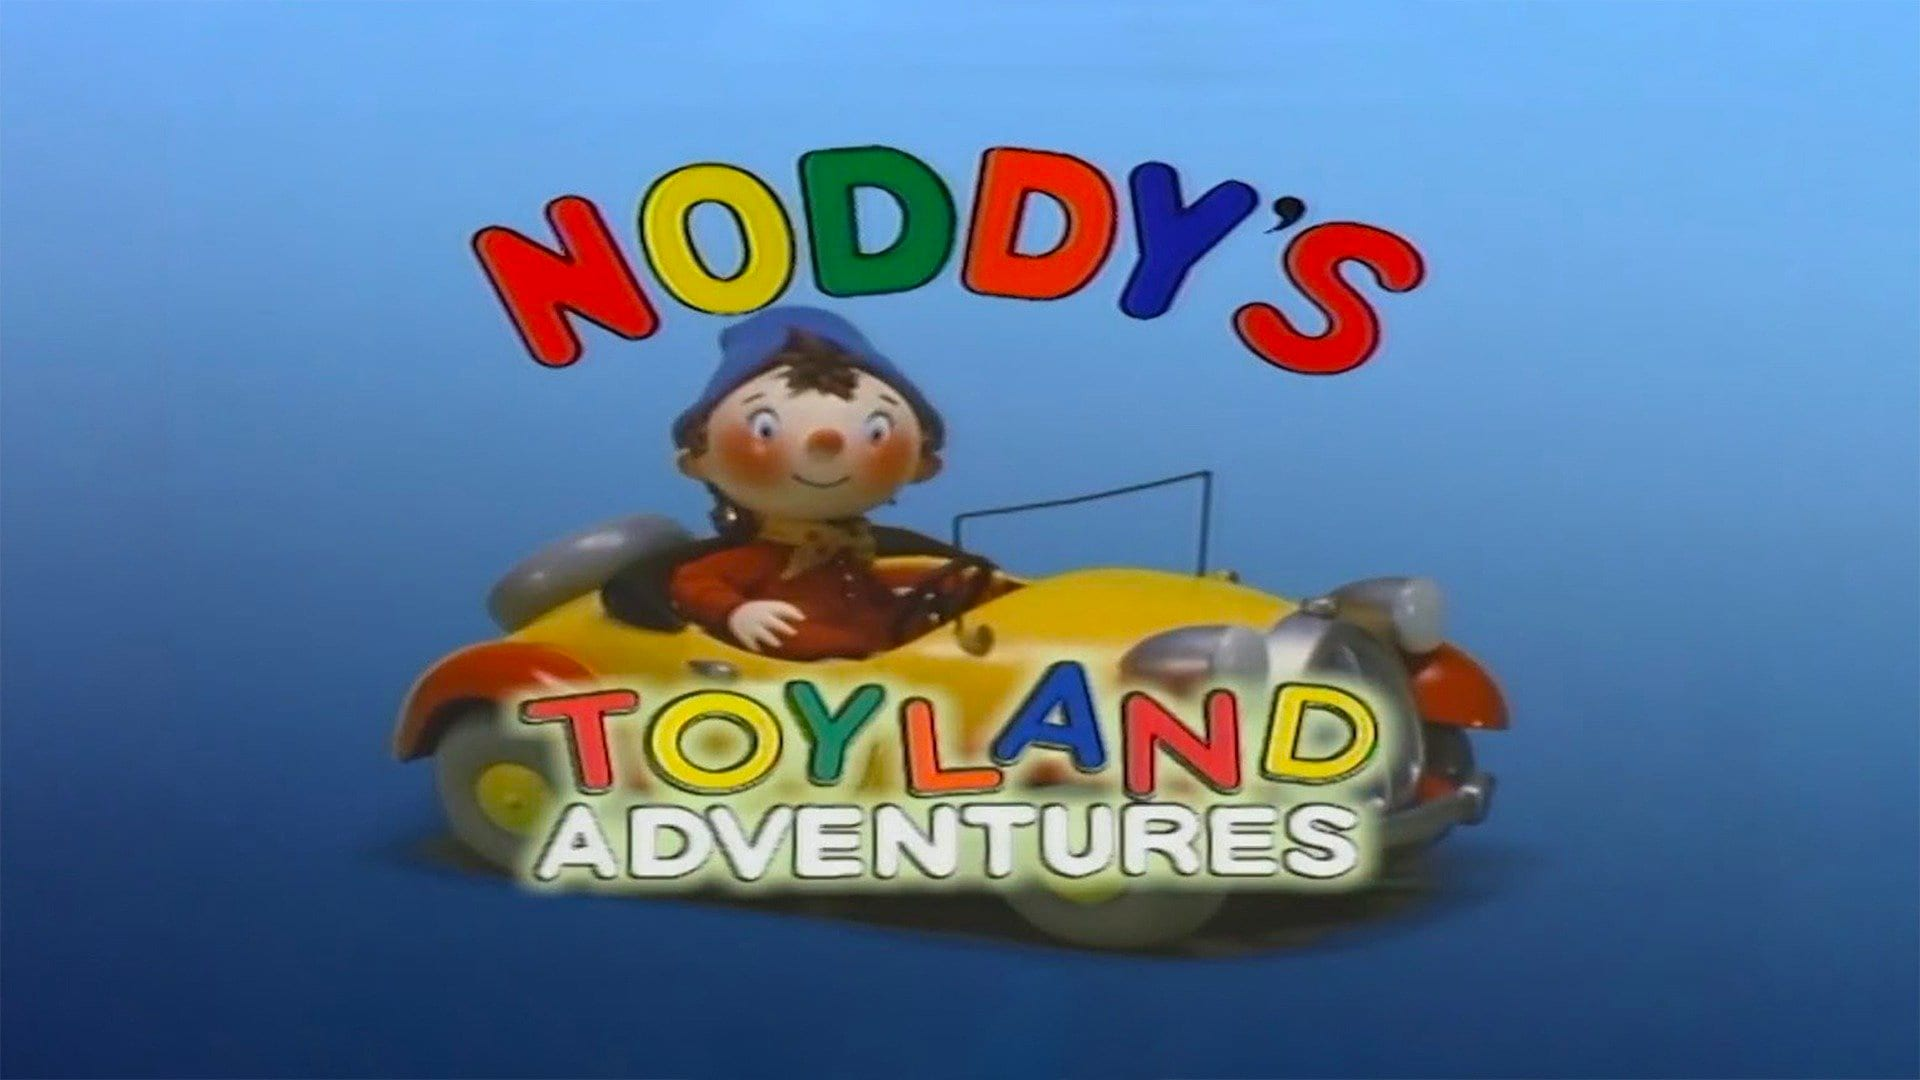 Noddy Gets Blamed